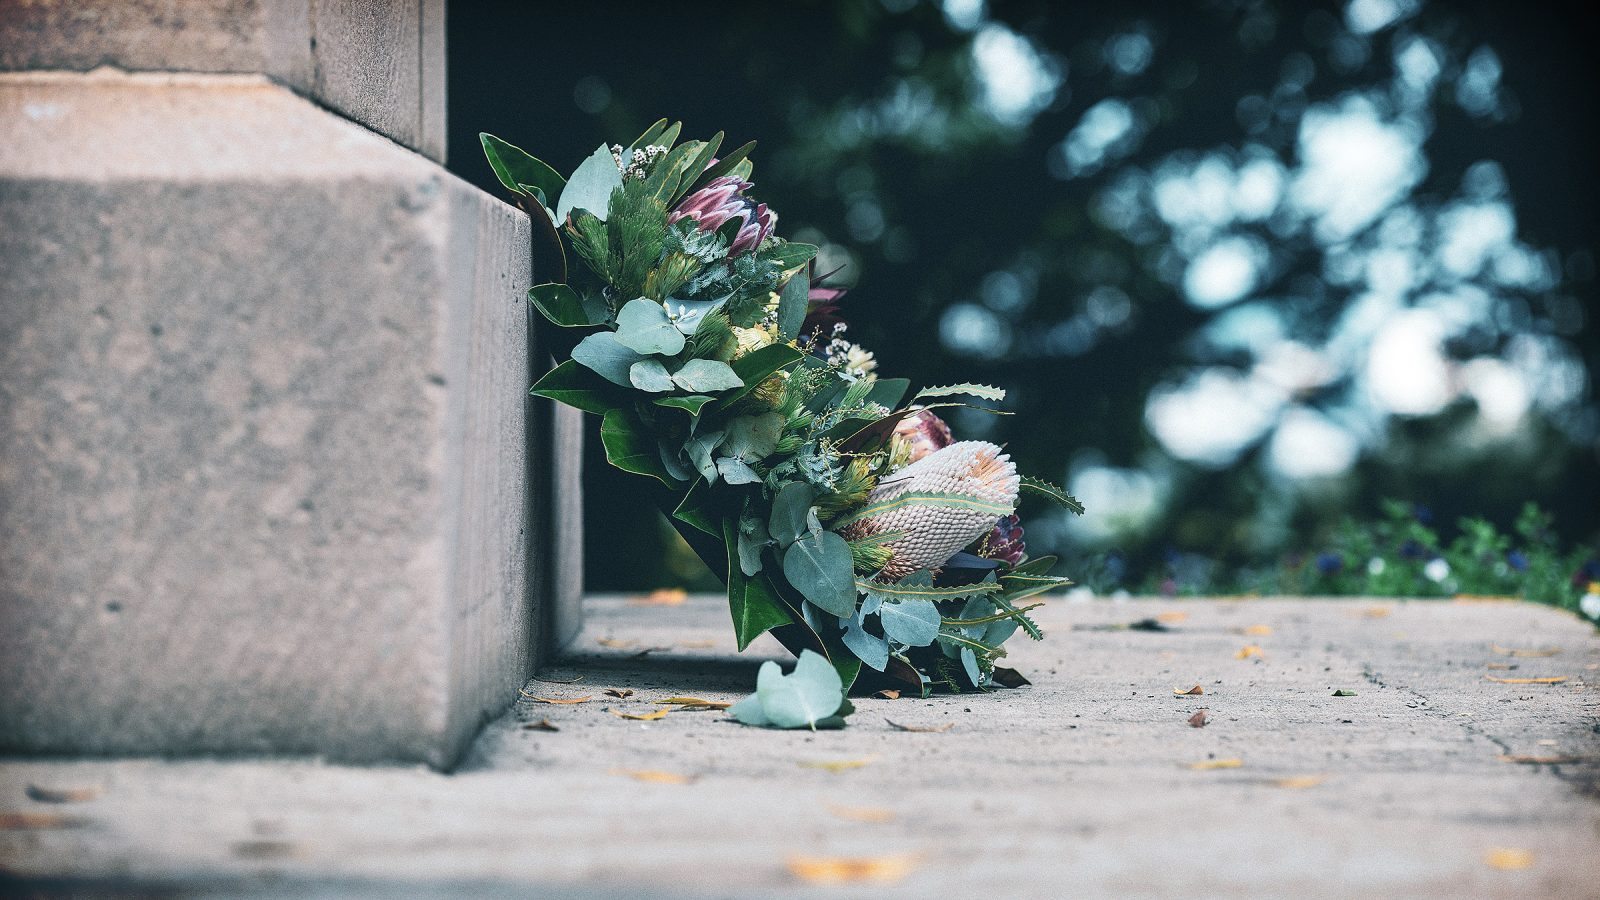 Wreath on a grave as a visual metaphor for an expired domain